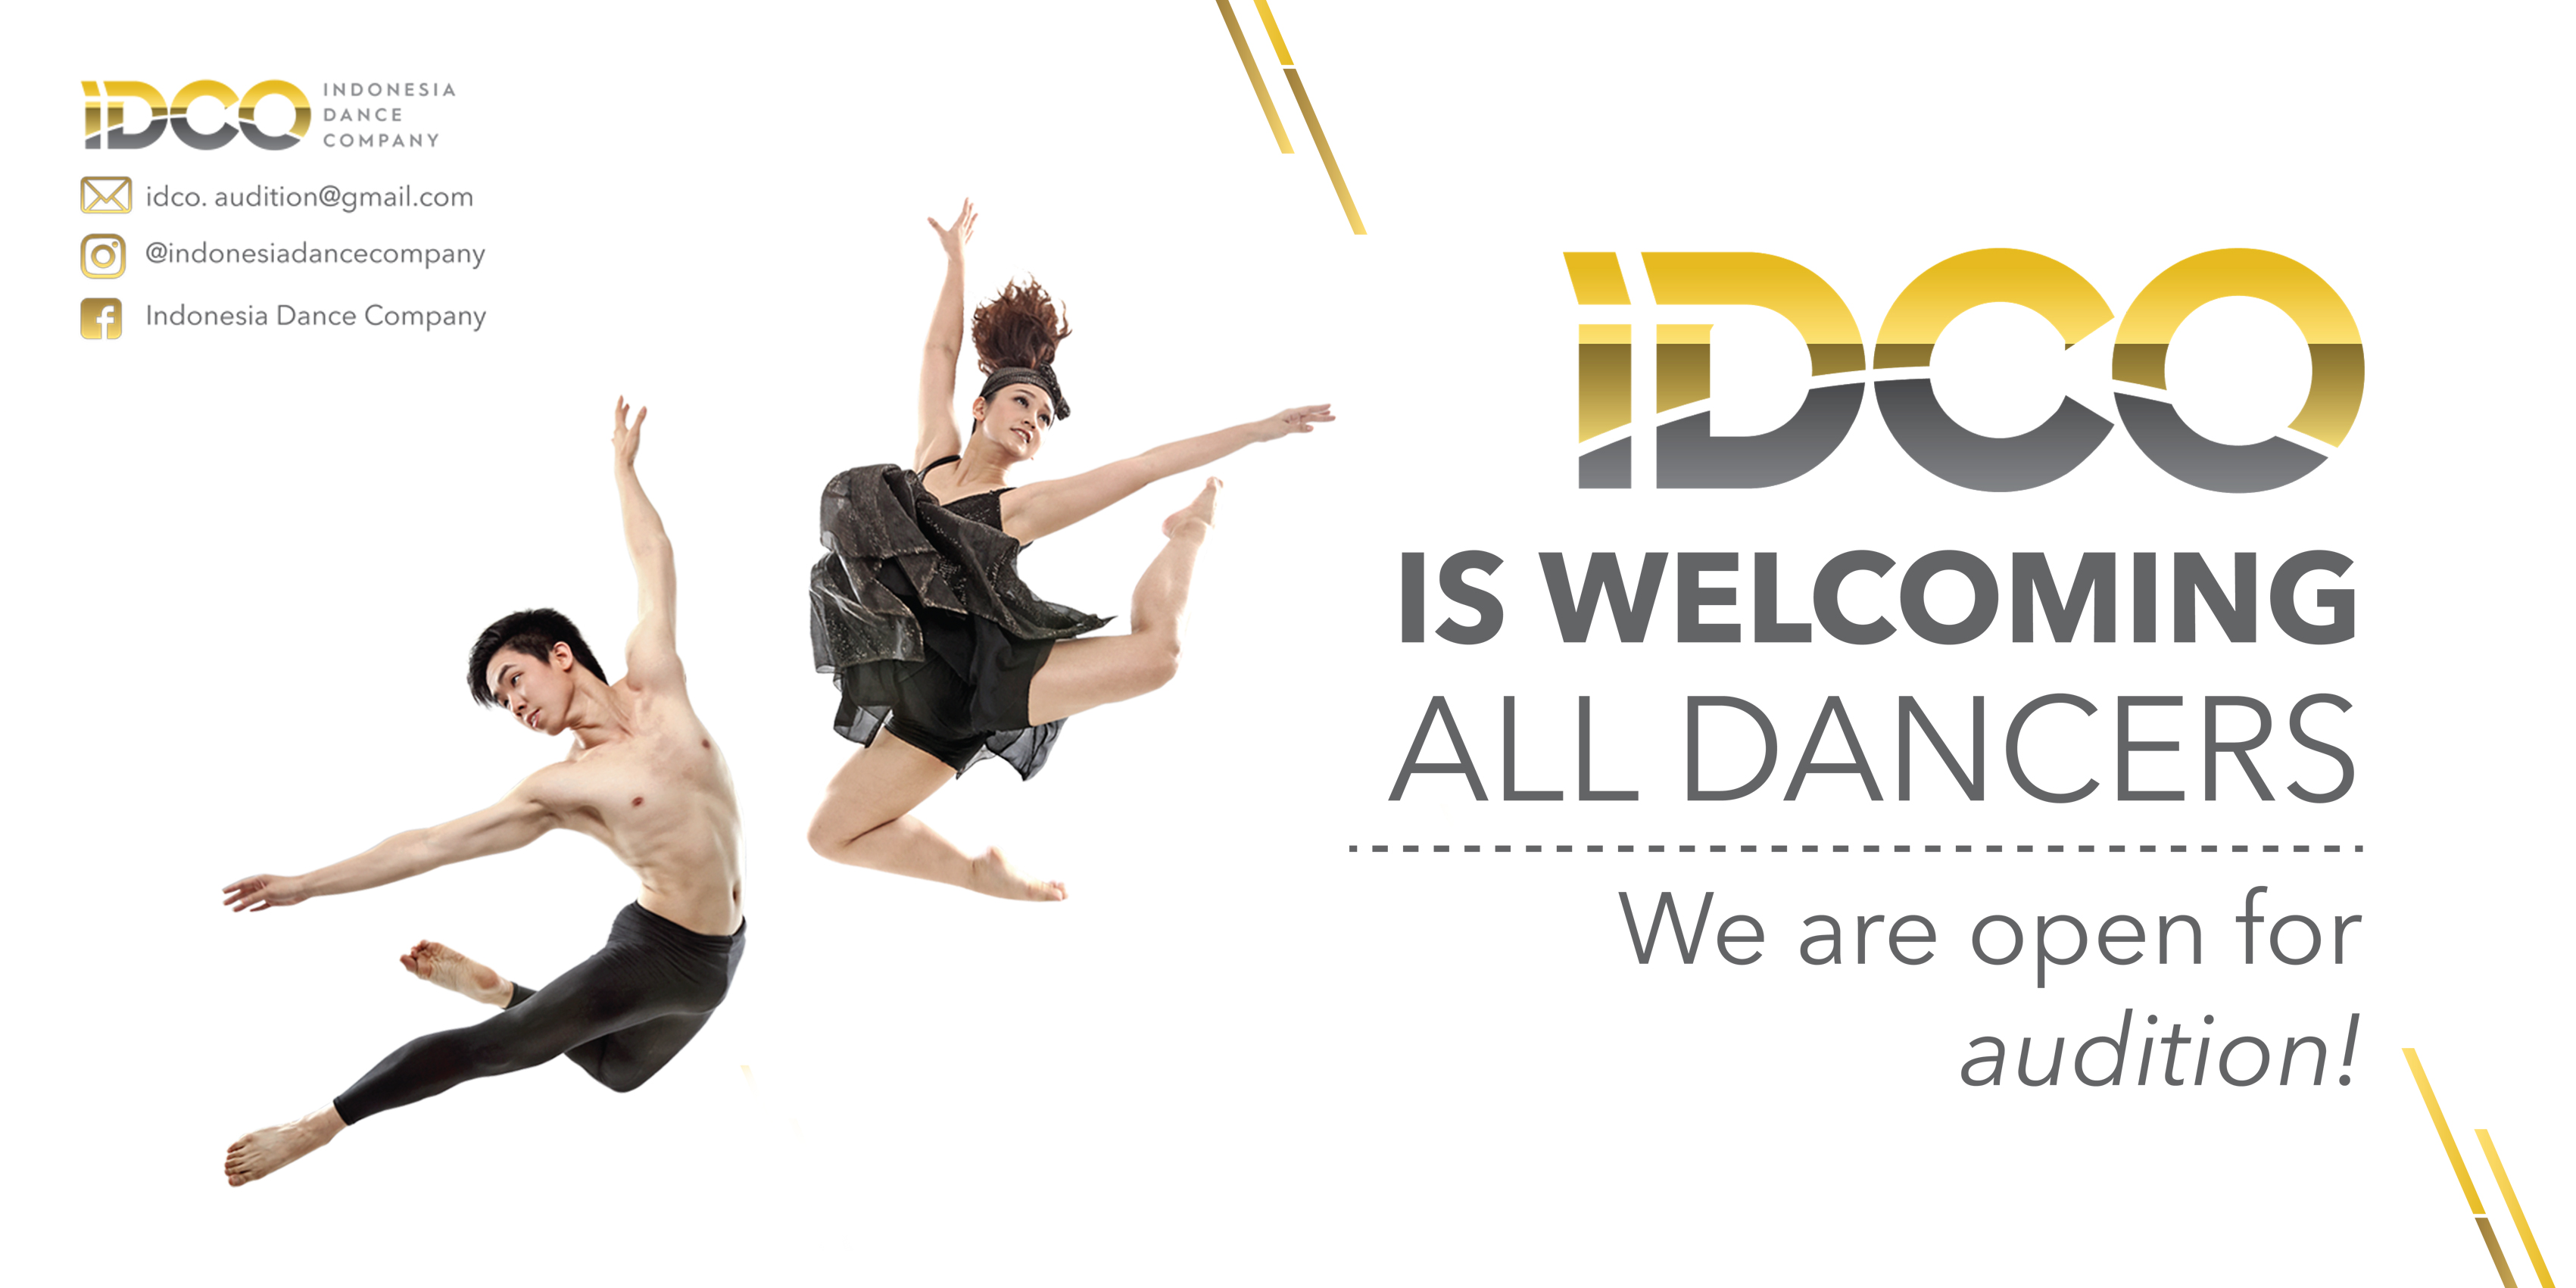 Indonesia Dance Company - Audition 2017